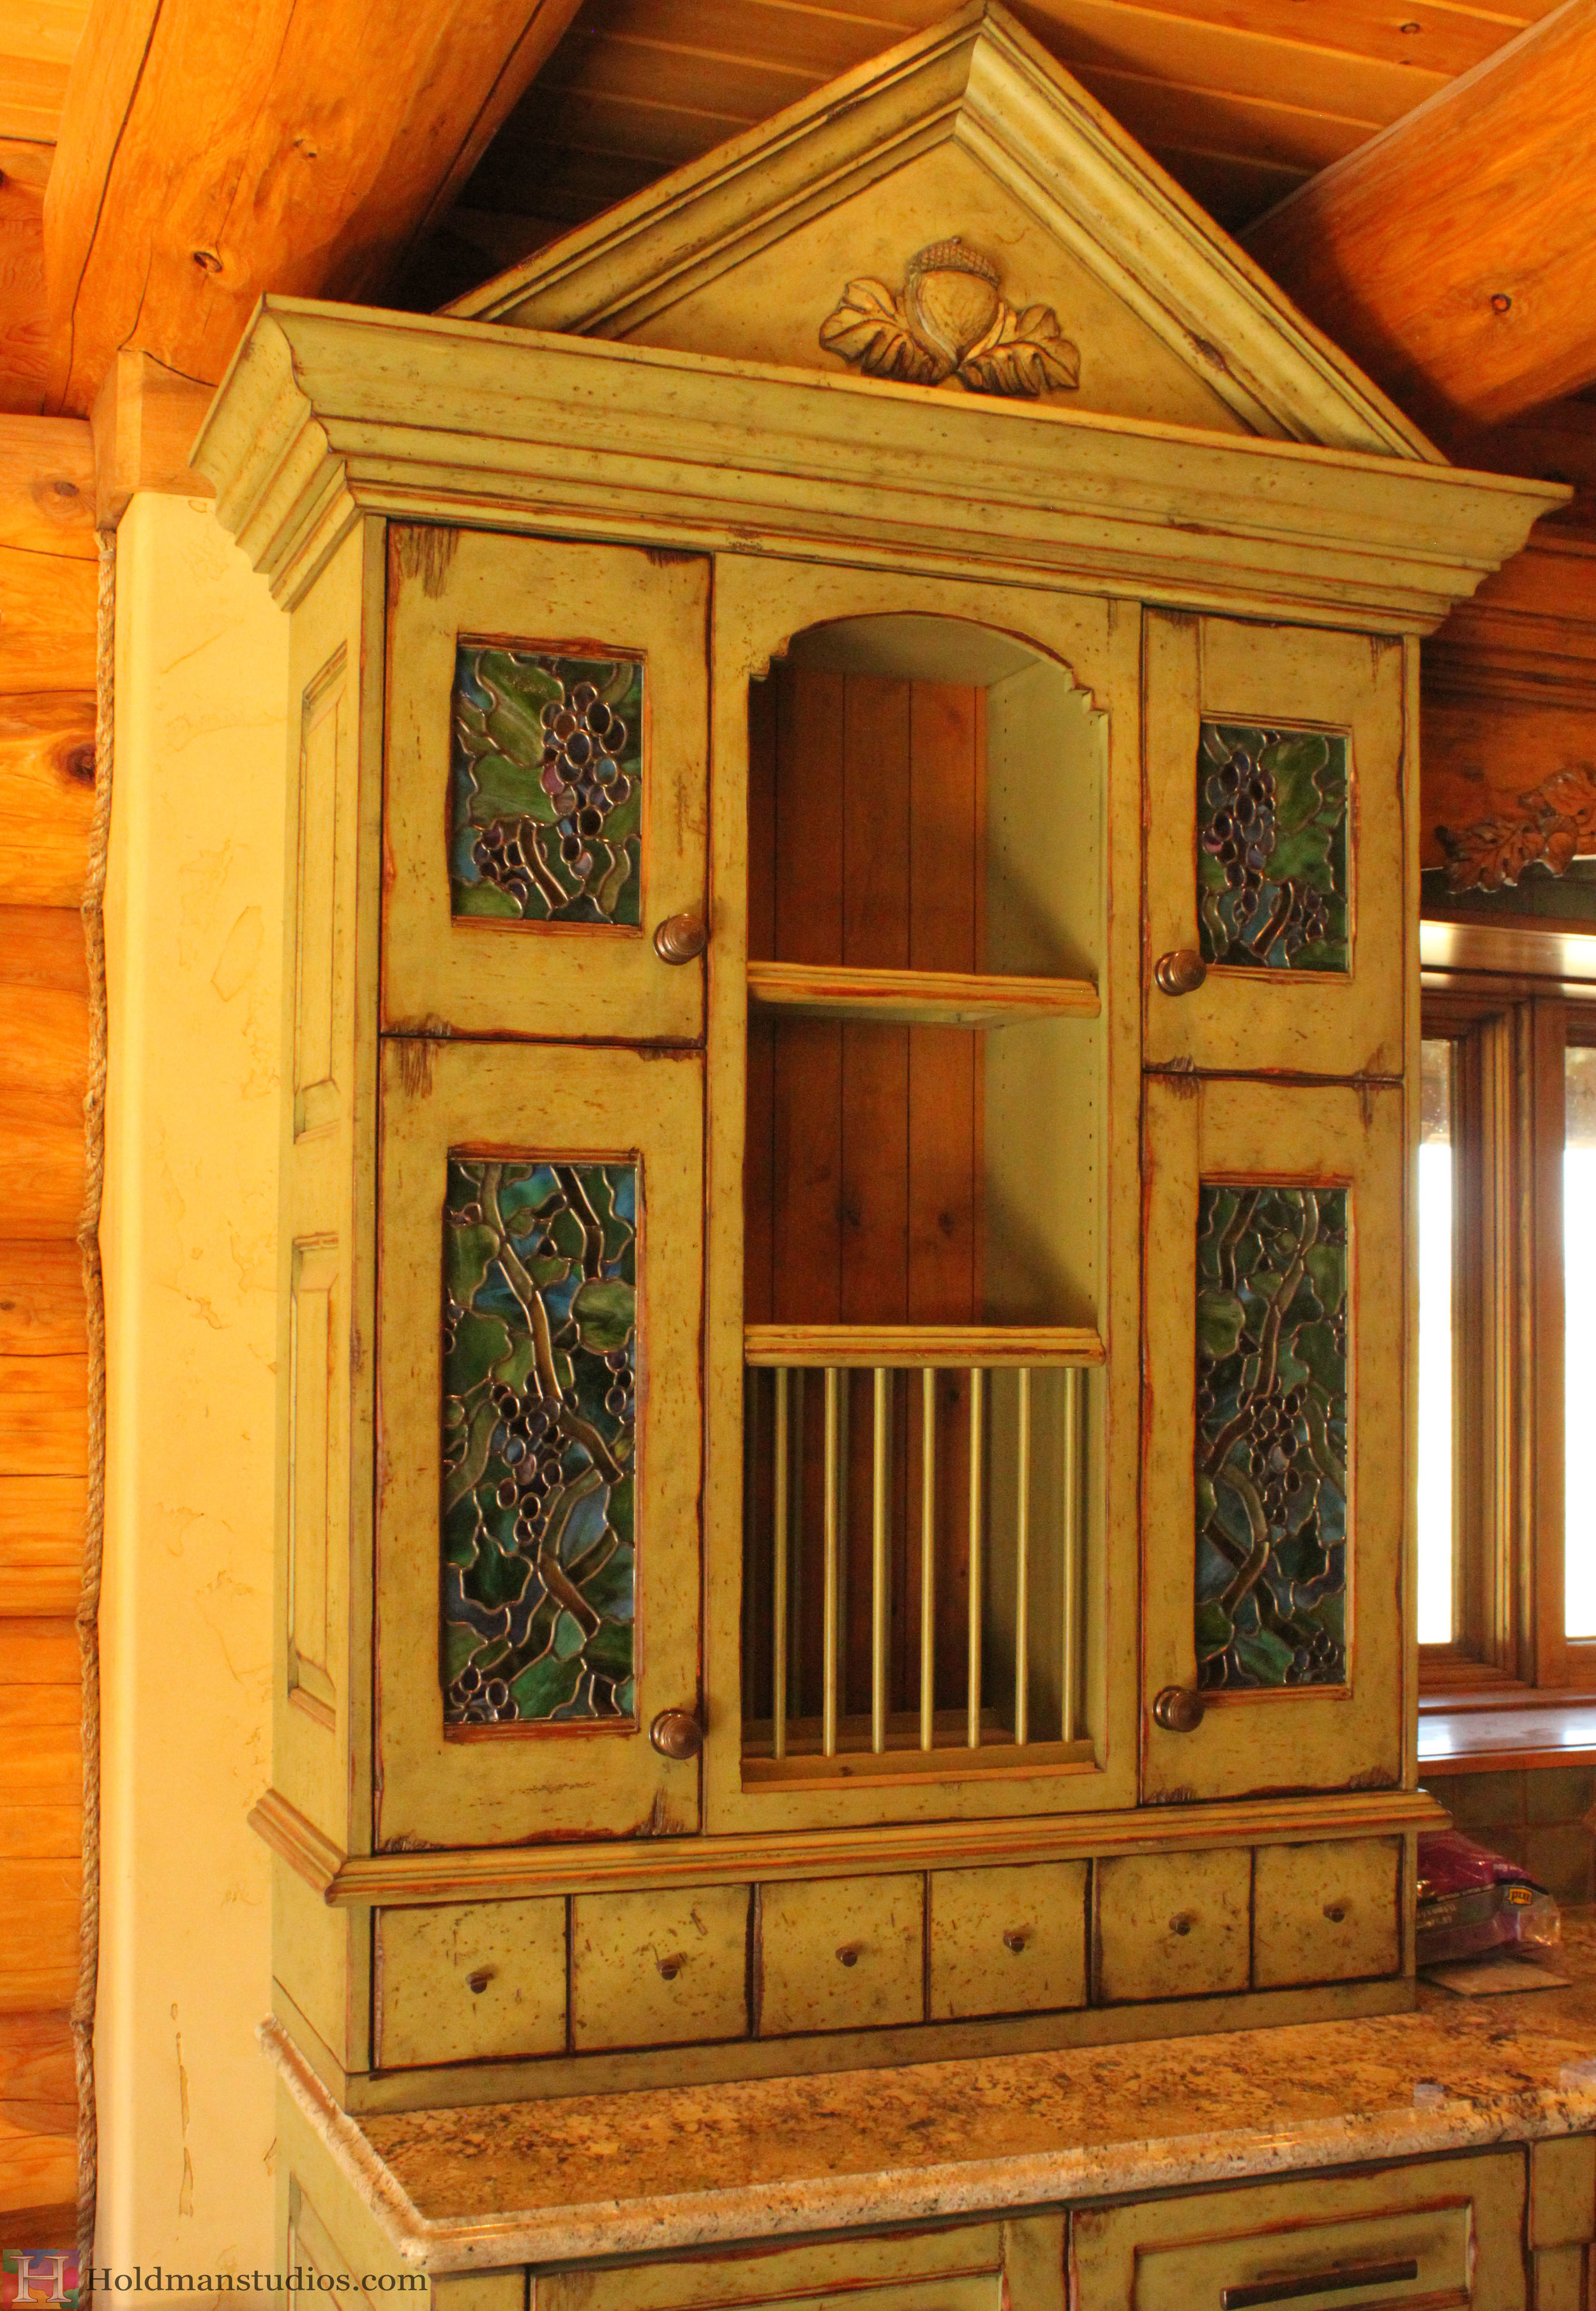 unfinished kitchen cabinet with stained glass door windows of grape vinescreated by artists under the direction of tom holdman at holdman studios